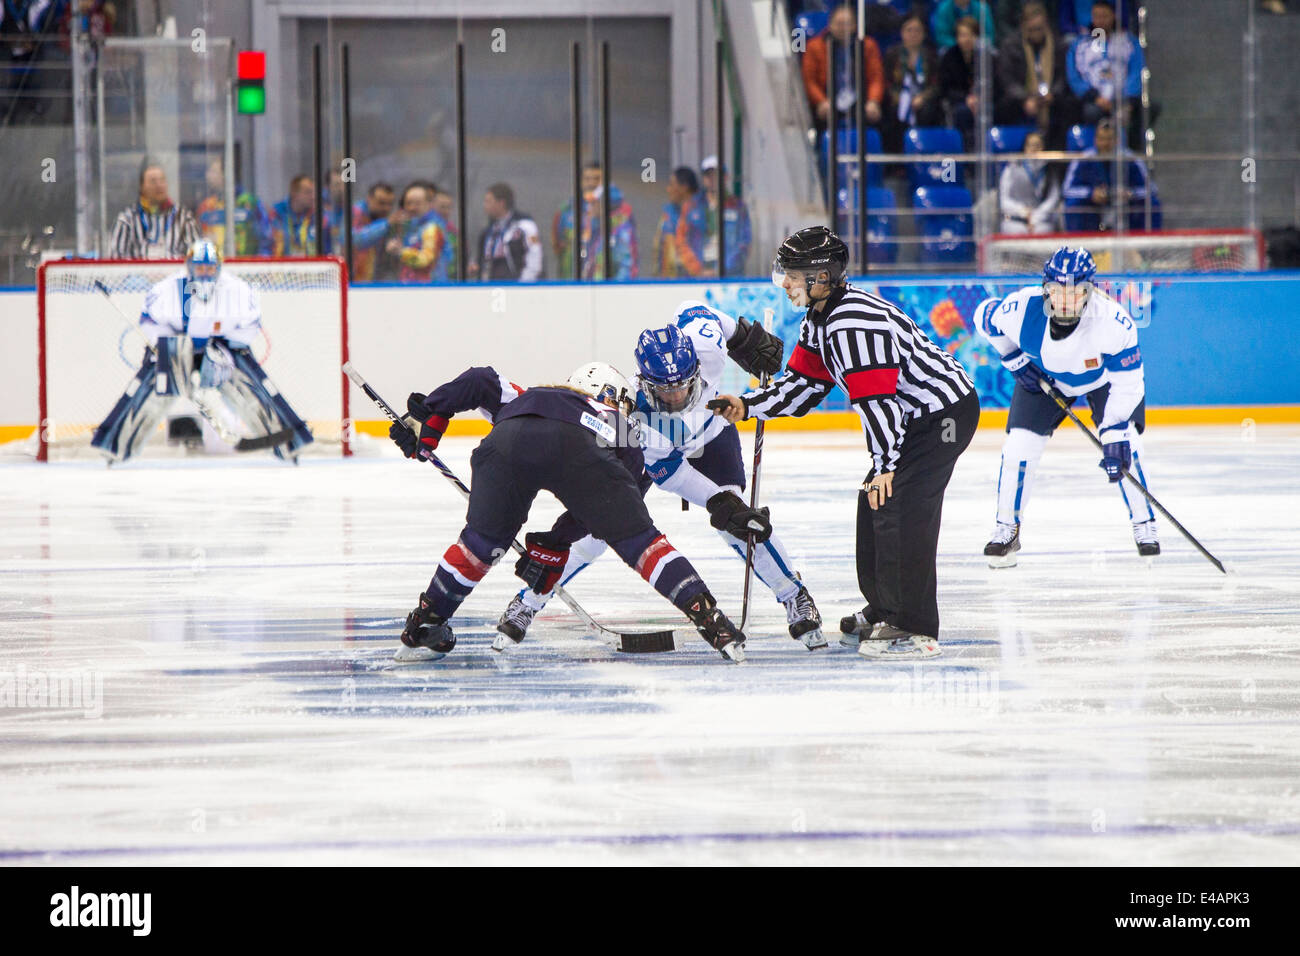 Women's Ice Hockey-USA-FIN at the Olympic Winter Games, Sochi 2014 - Stock Image